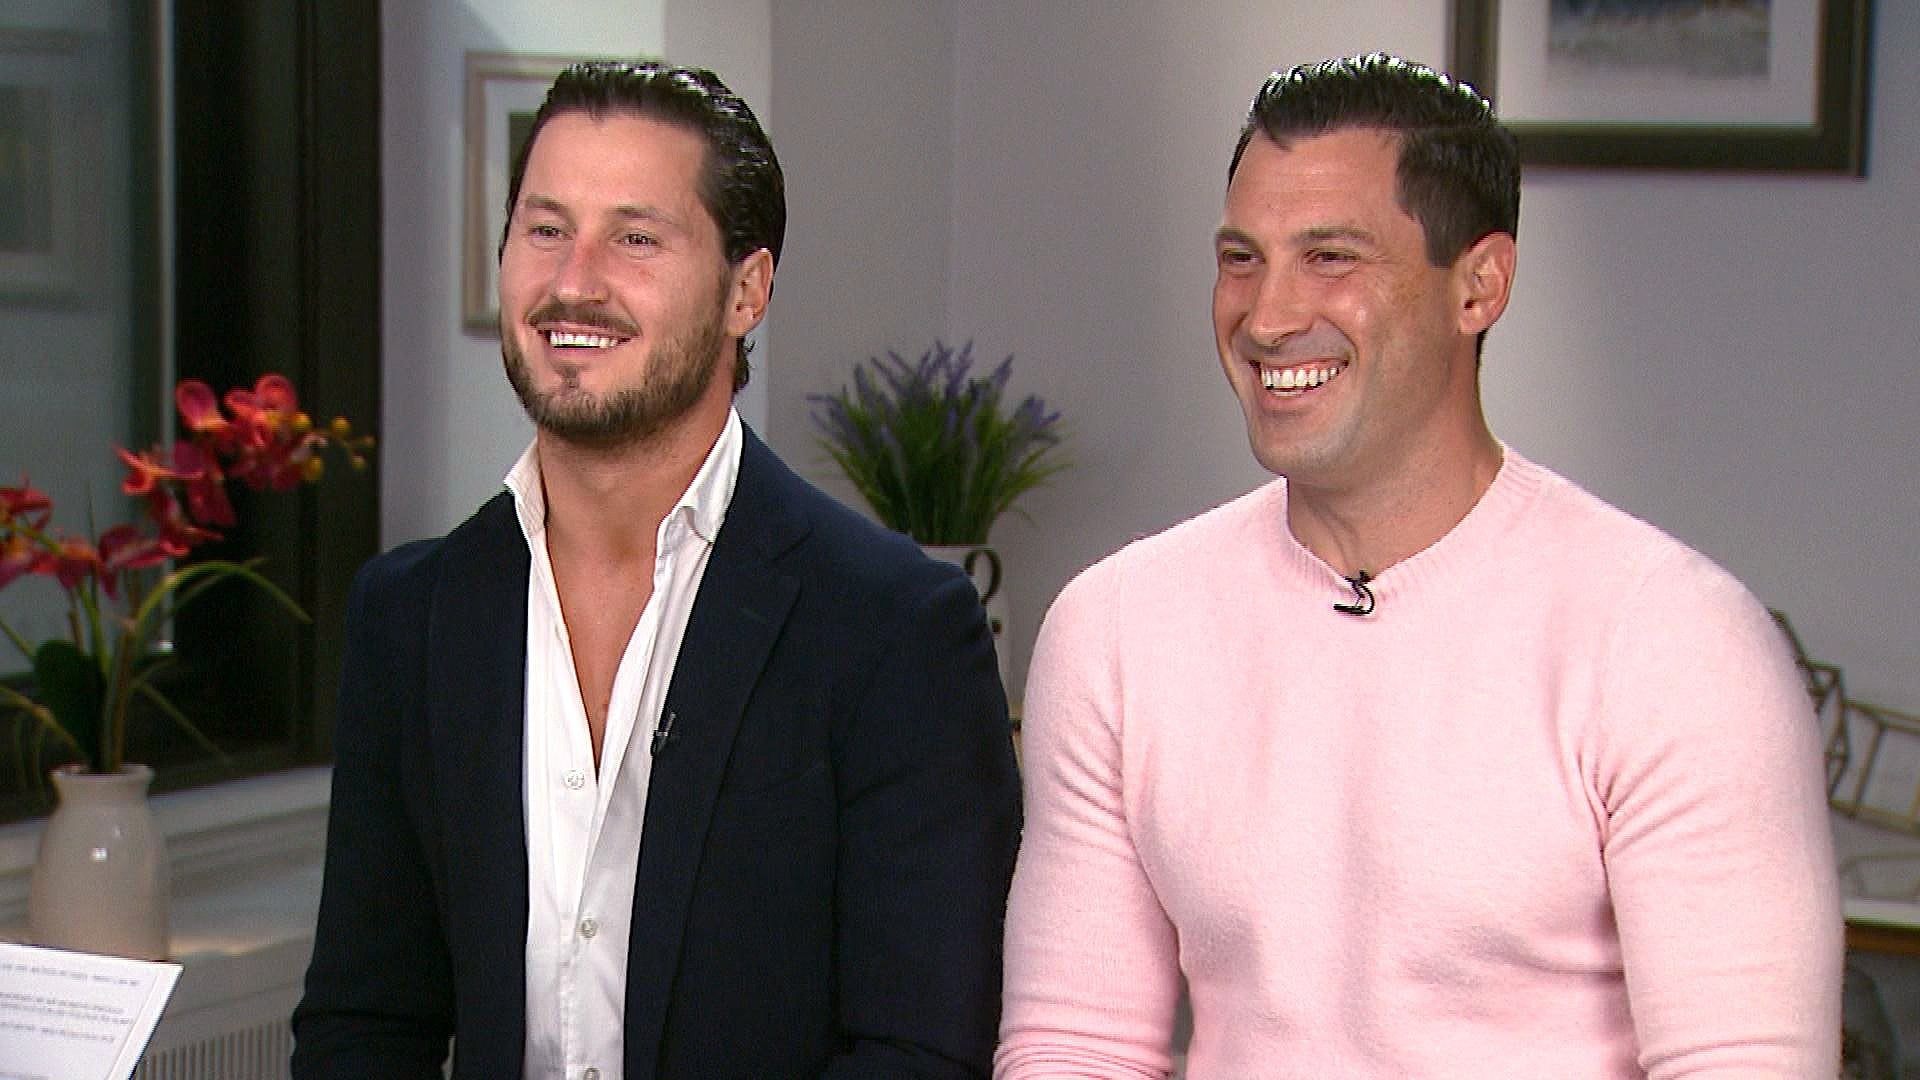 Tour max chmerkovskiy and val Dancing with